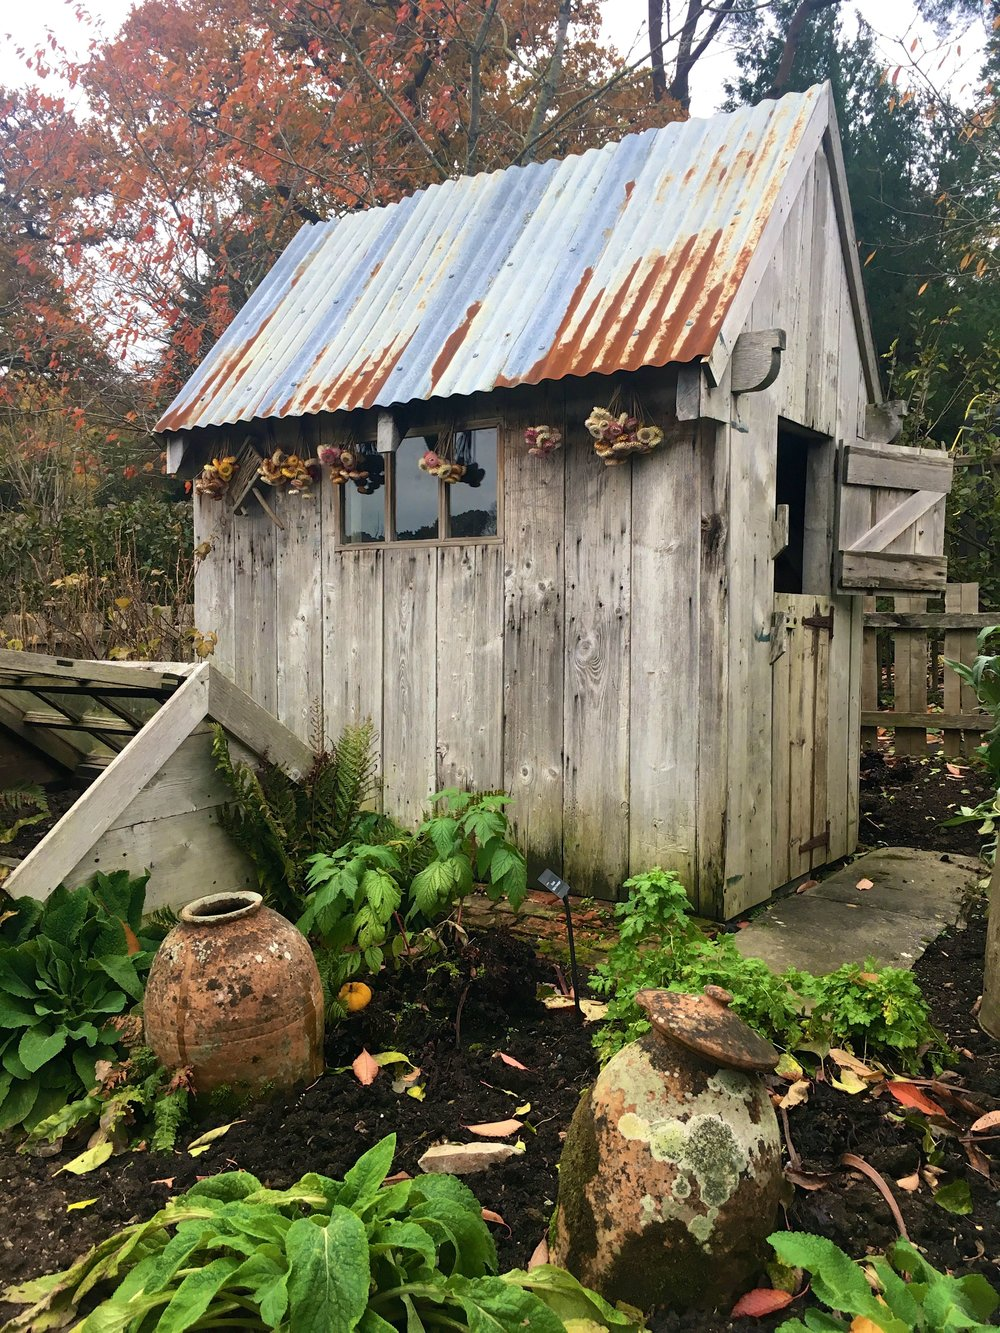 A closer look at Mr McGregor's ramshackle shed